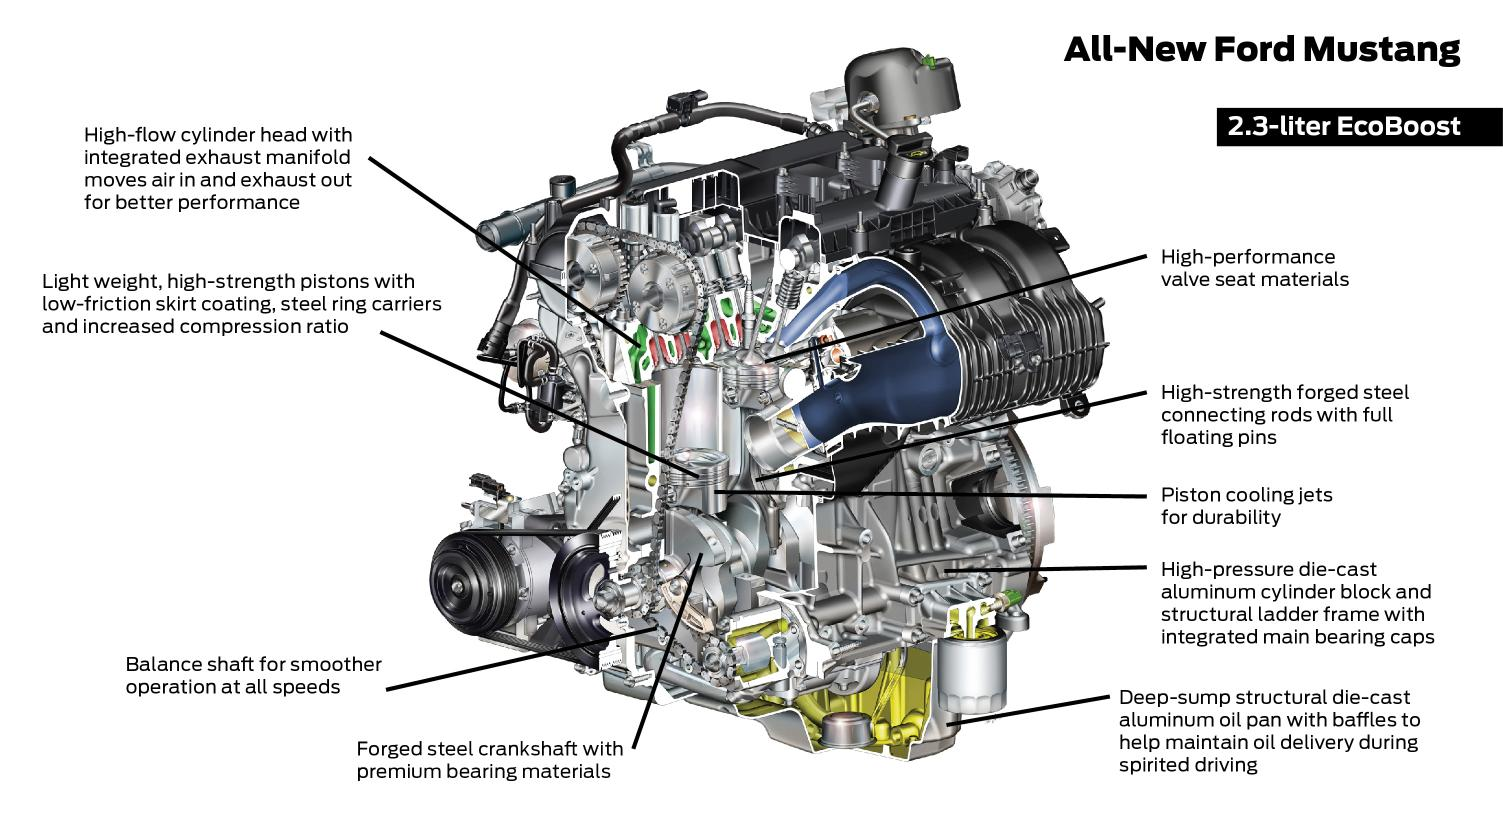 Fr S Engine Diagram Another Blog About Wiring Ej20 6 Gen Mustang Official Pics My Mustang6g Com Page 5 Scion Rh Ft86club